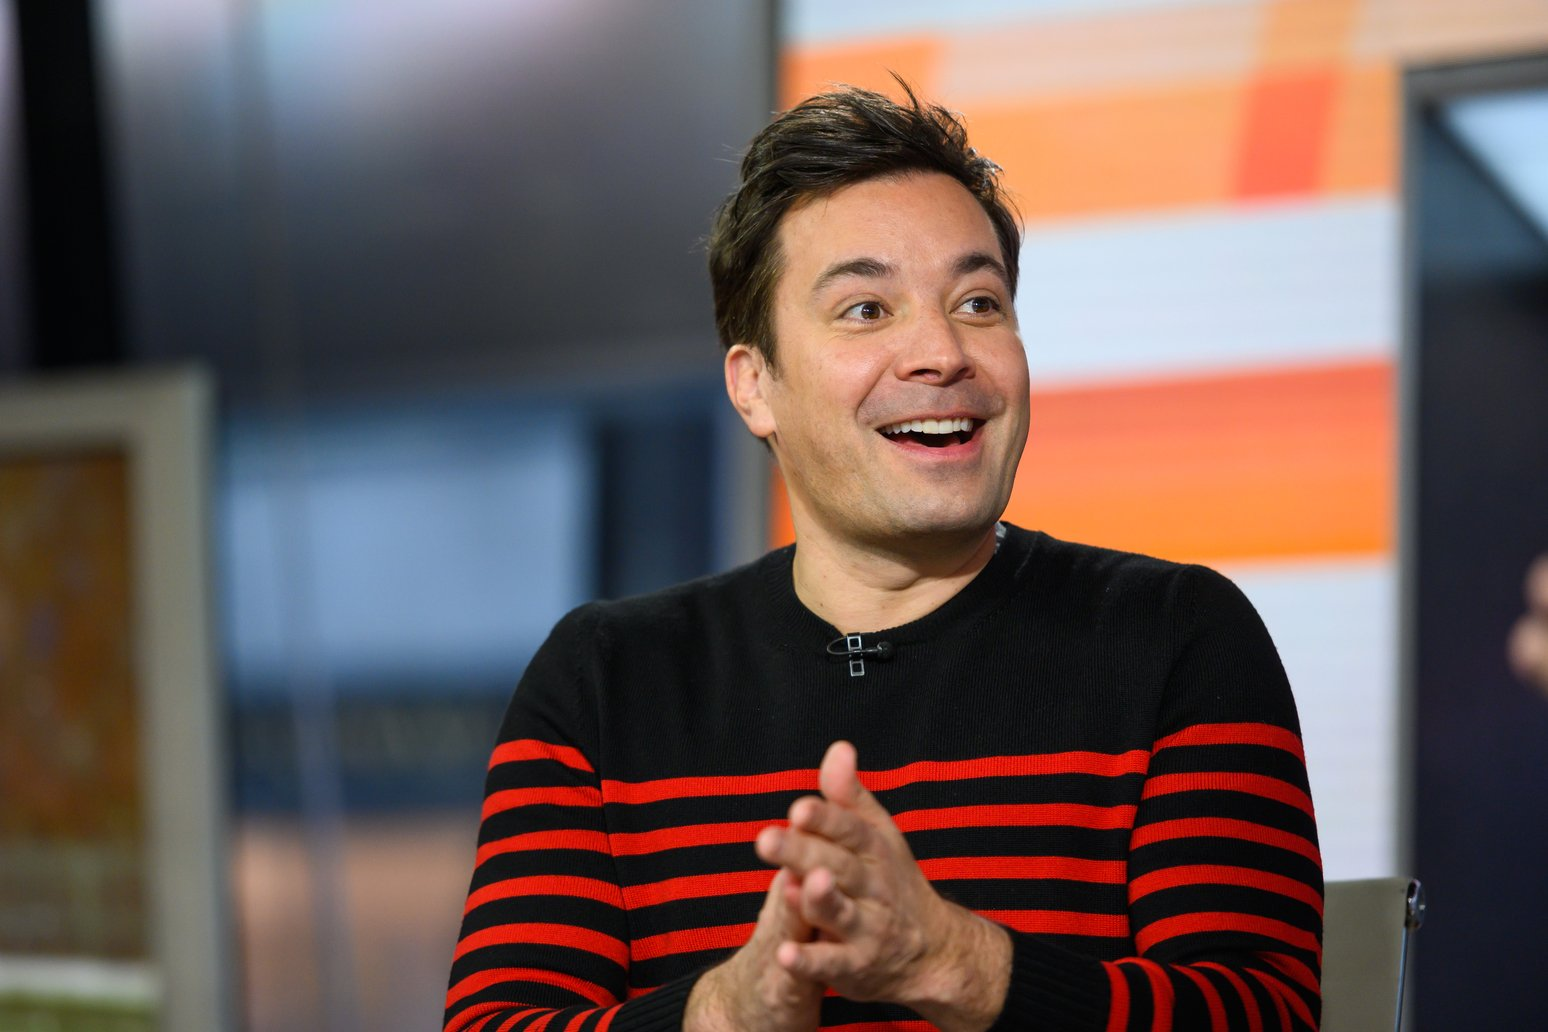 TODAY -- Pictured: Jimmy Fallon on Tuesday, January 28, 2020 | Photo: GettyImages